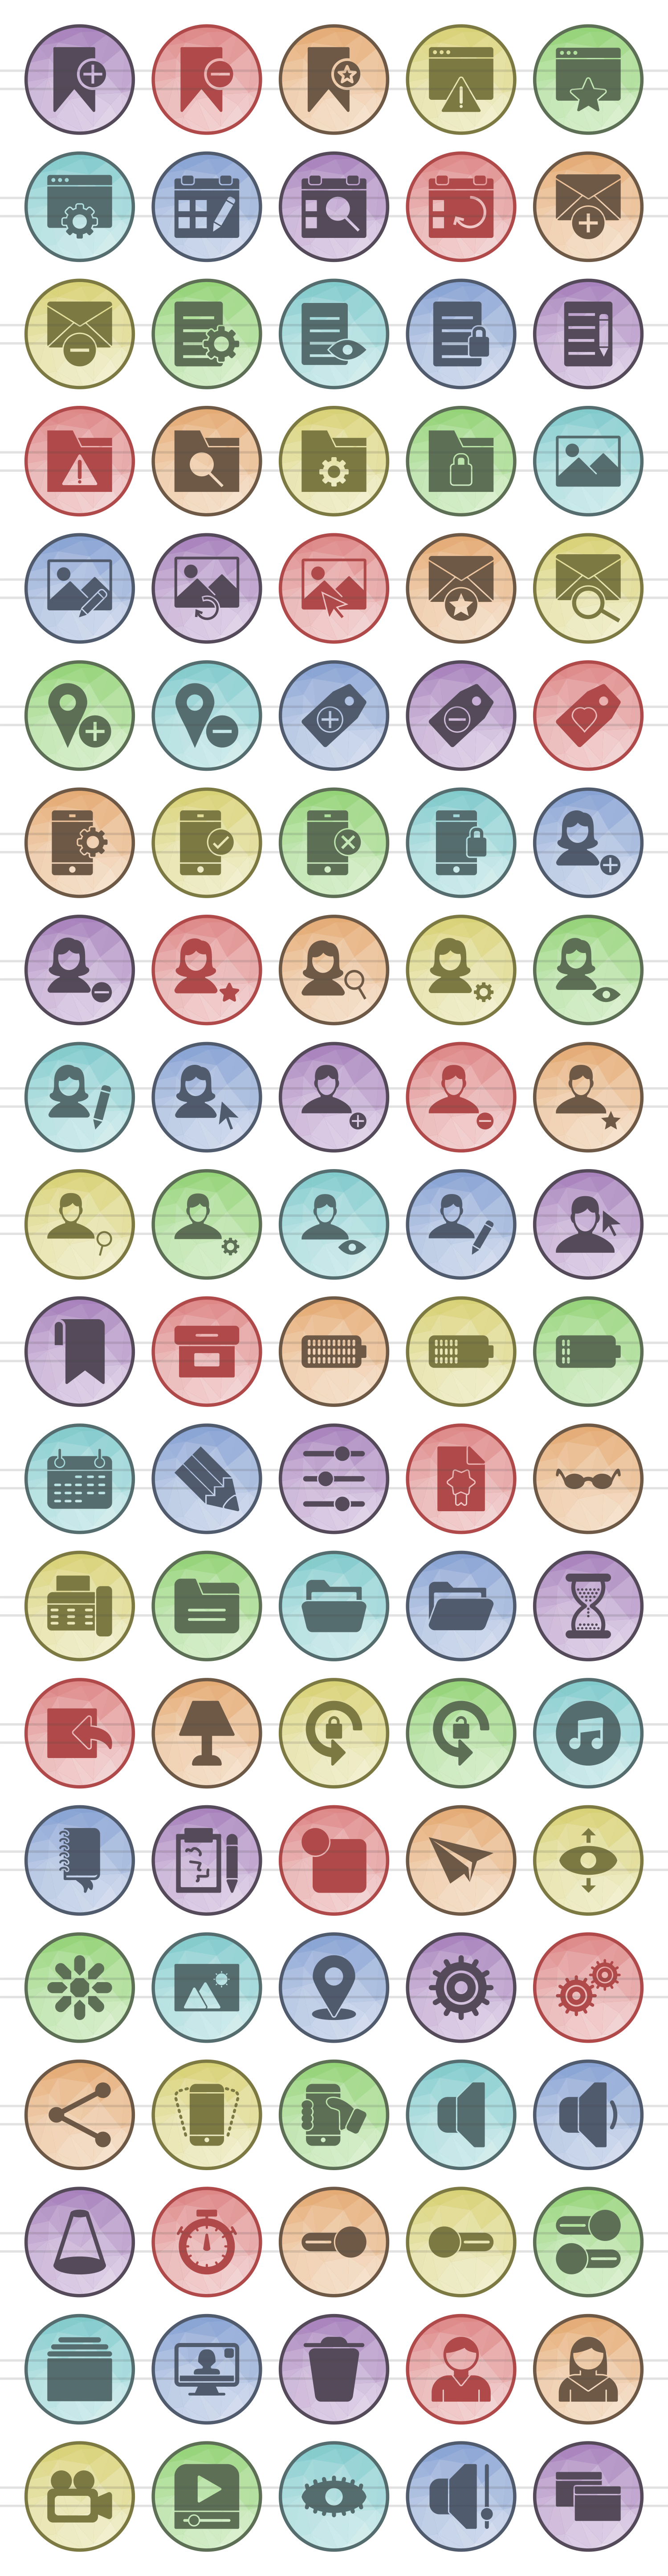 100 App & Web Interface Filled Low Poly Icons example image 2